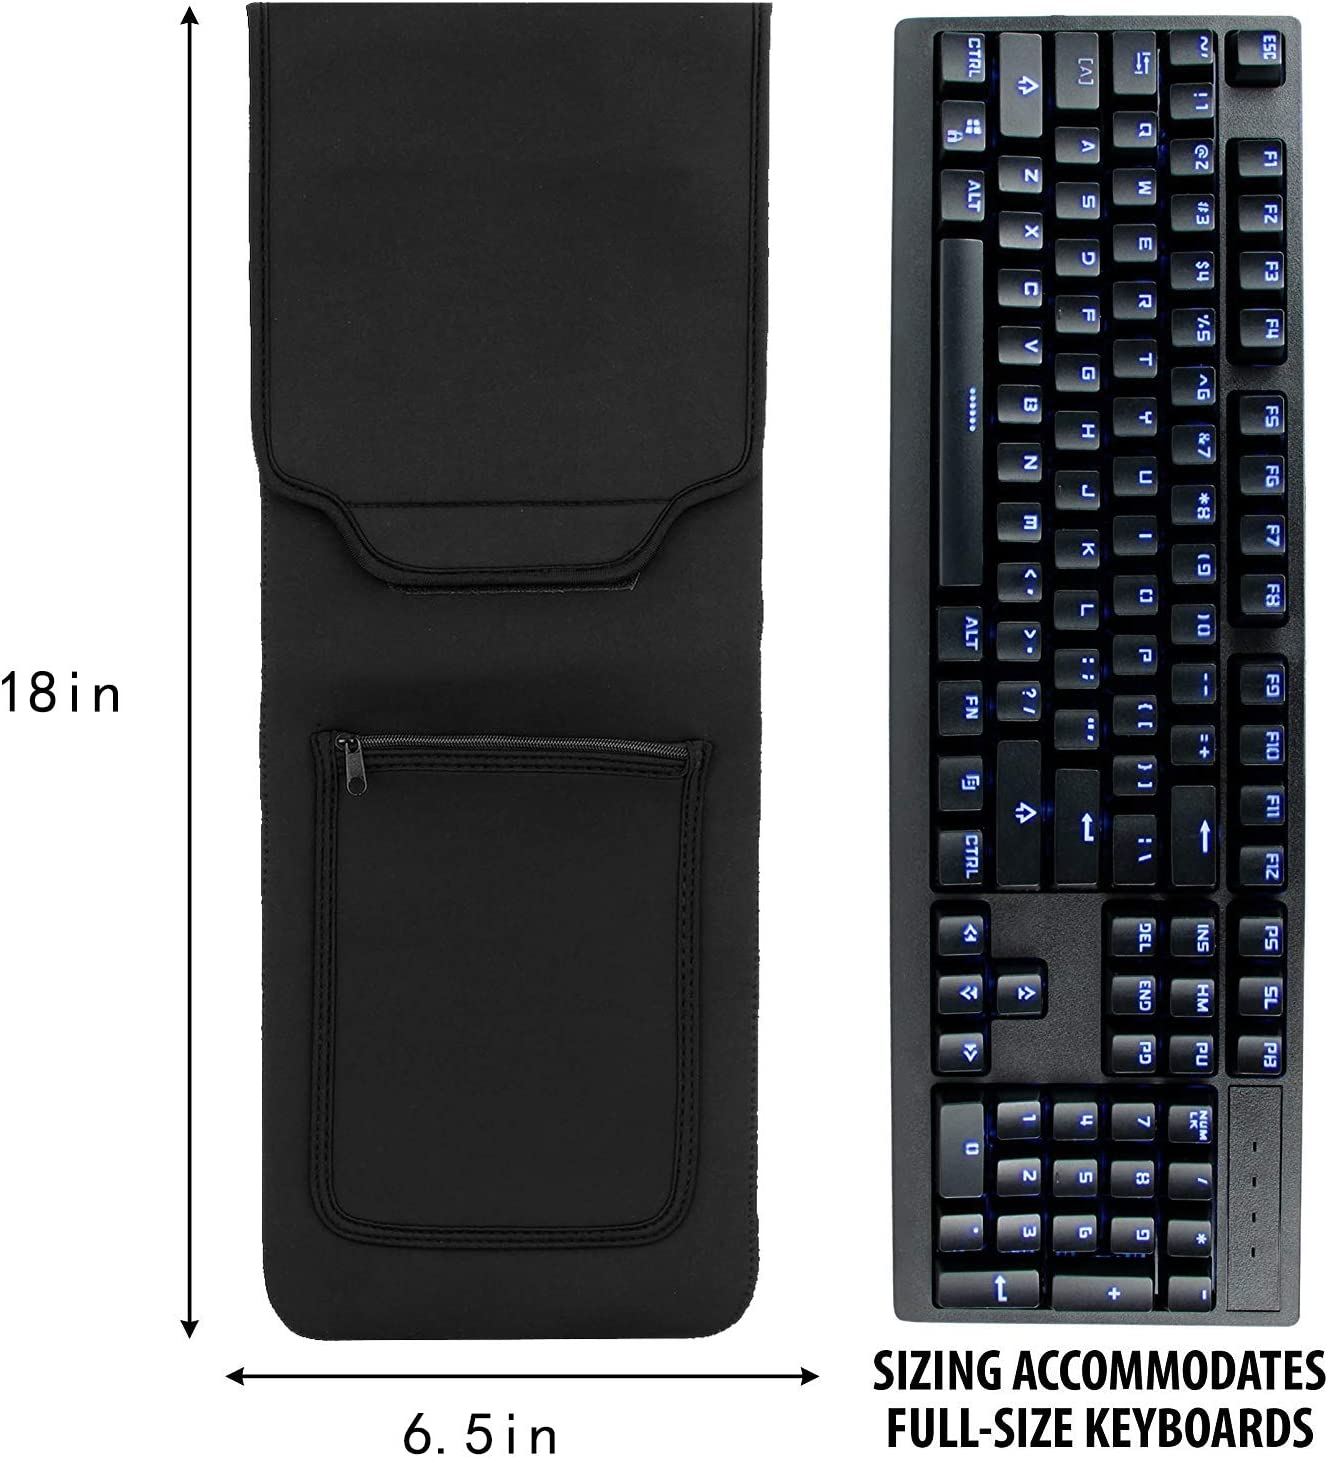 KuRoKo Keyboard Neoprene Sleeve Case(up to 18 Inches), with Wireless Mouse Storage & Cable and Charger Pouch